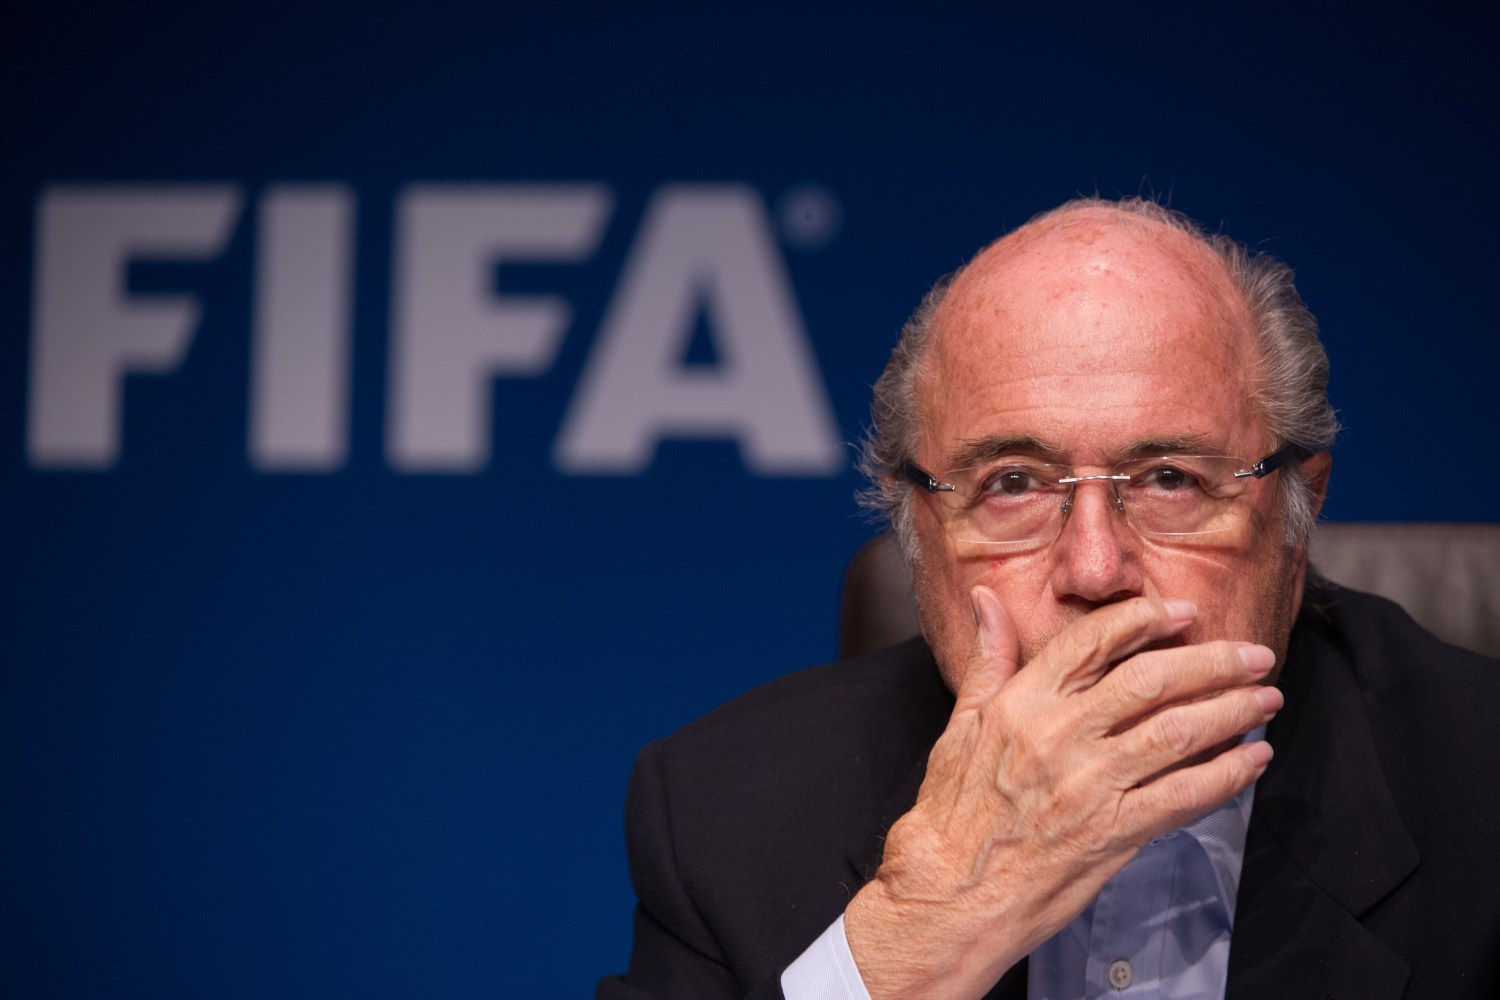 Former FIFA President Blatter Gets New Six-Year Ban From Football